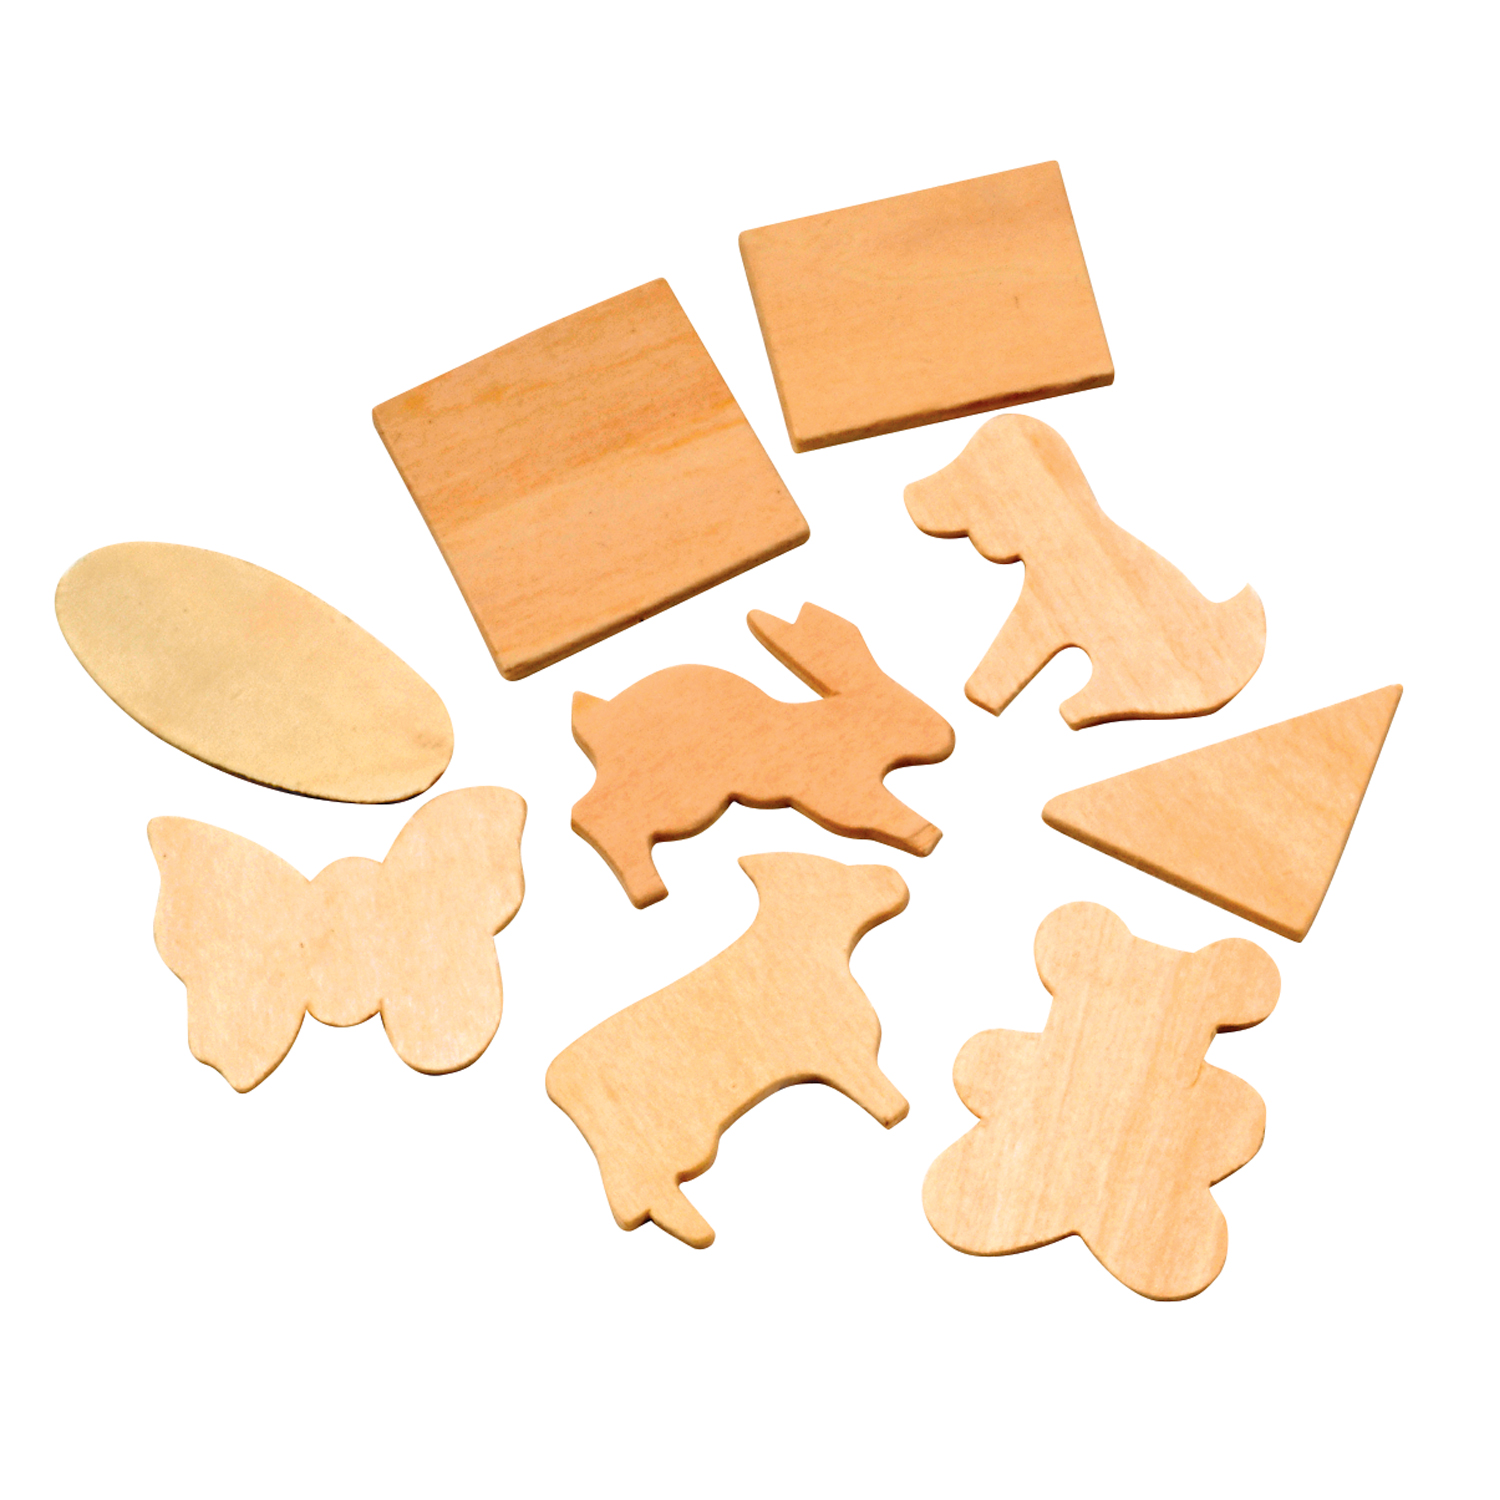 Creativity Street® Natural Wood Shapes- Animal & Geometric Assortment